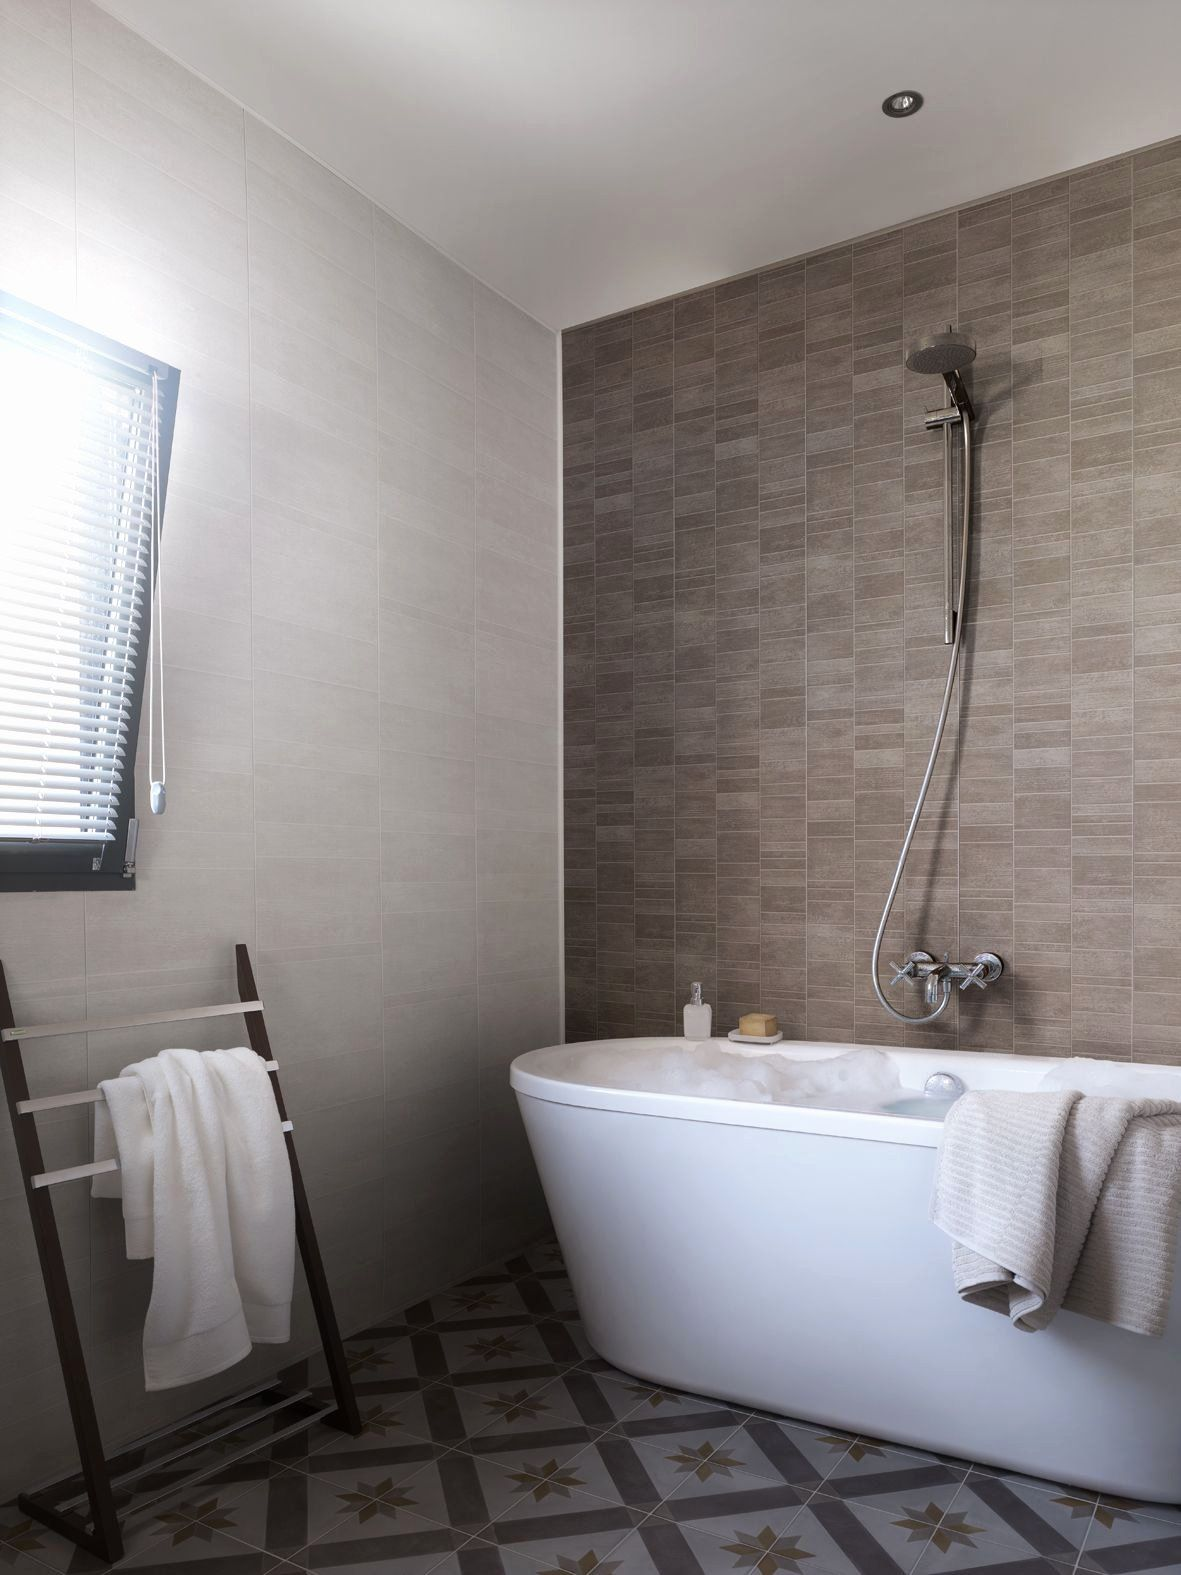 Bathroom Wall Panel Ideas Luxury Pvc Wall Panelling An Easy Clean Waterproof And Low In 2020 Bathroom Wall Panels Stylish Bathroom Bathroom Wall Coverings